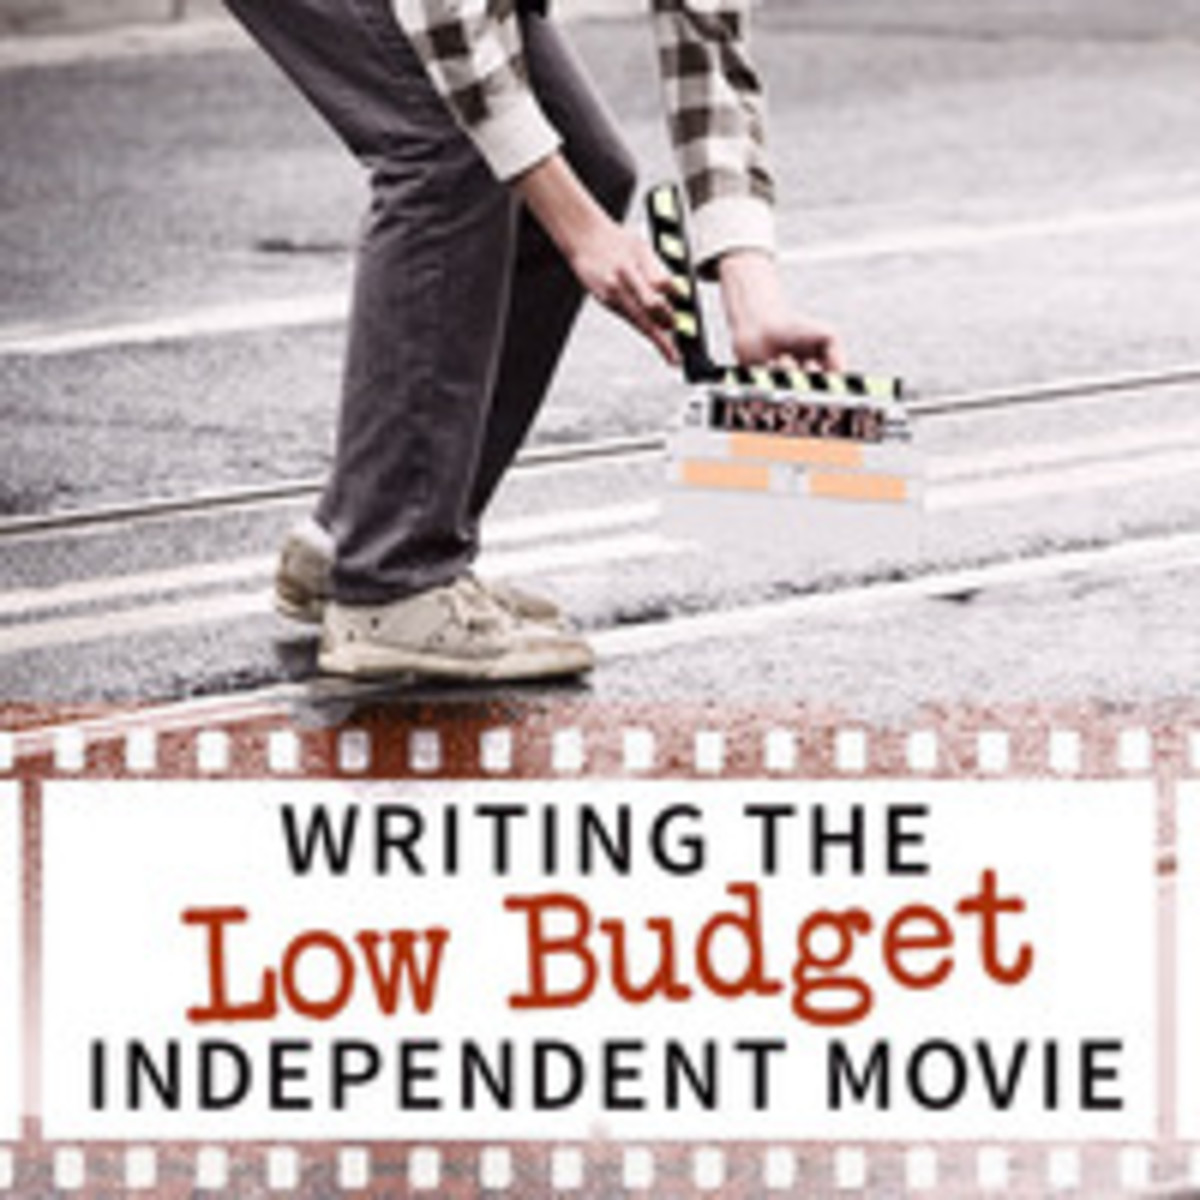 Writing the Low Budget Independent Movie